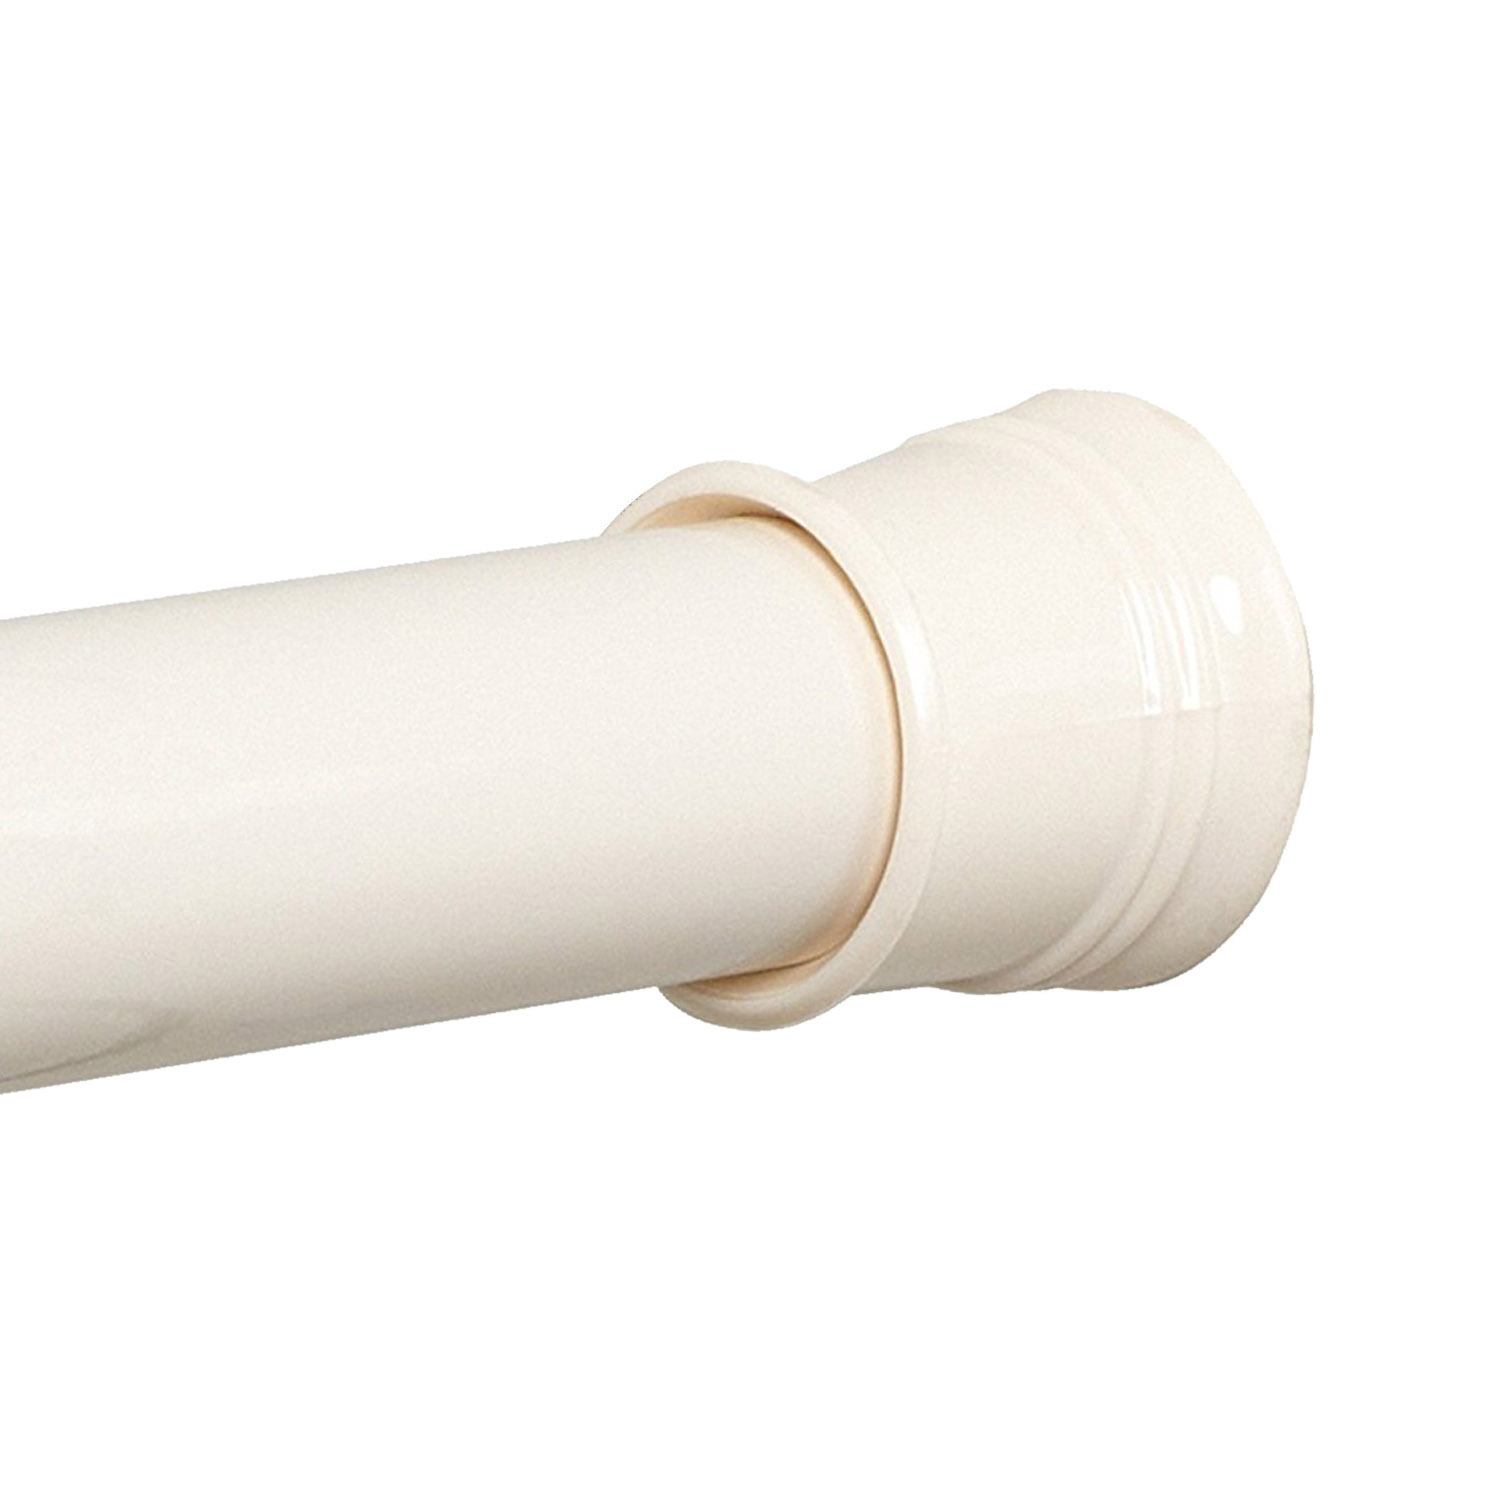 Zenith Twist Tight Shower Curtain Rod In Bone Adjustable To 72 Inches